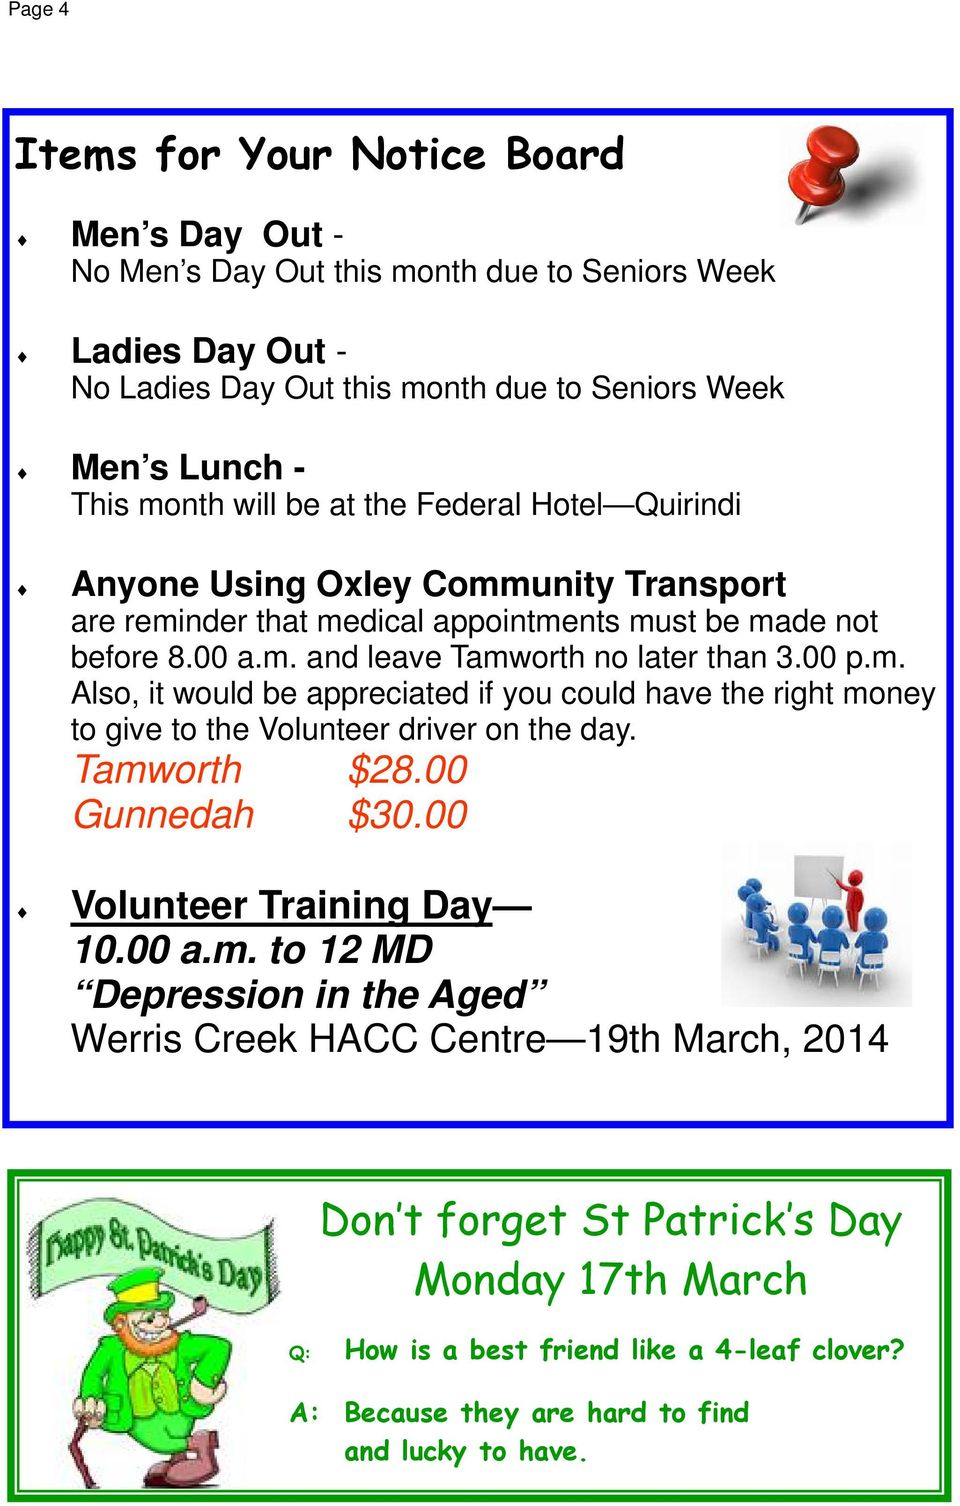 Tamworth $28.00 Gunnedah $30.00 Volunteer Training Day 10.00 a.m. to 12 MD Depression in the Aged Werris Creek HACC Centre 19th March, 2014 Don t forget St Patrick s Day Monday 17th March Q: How is a best friend like a 4-leaf clover?